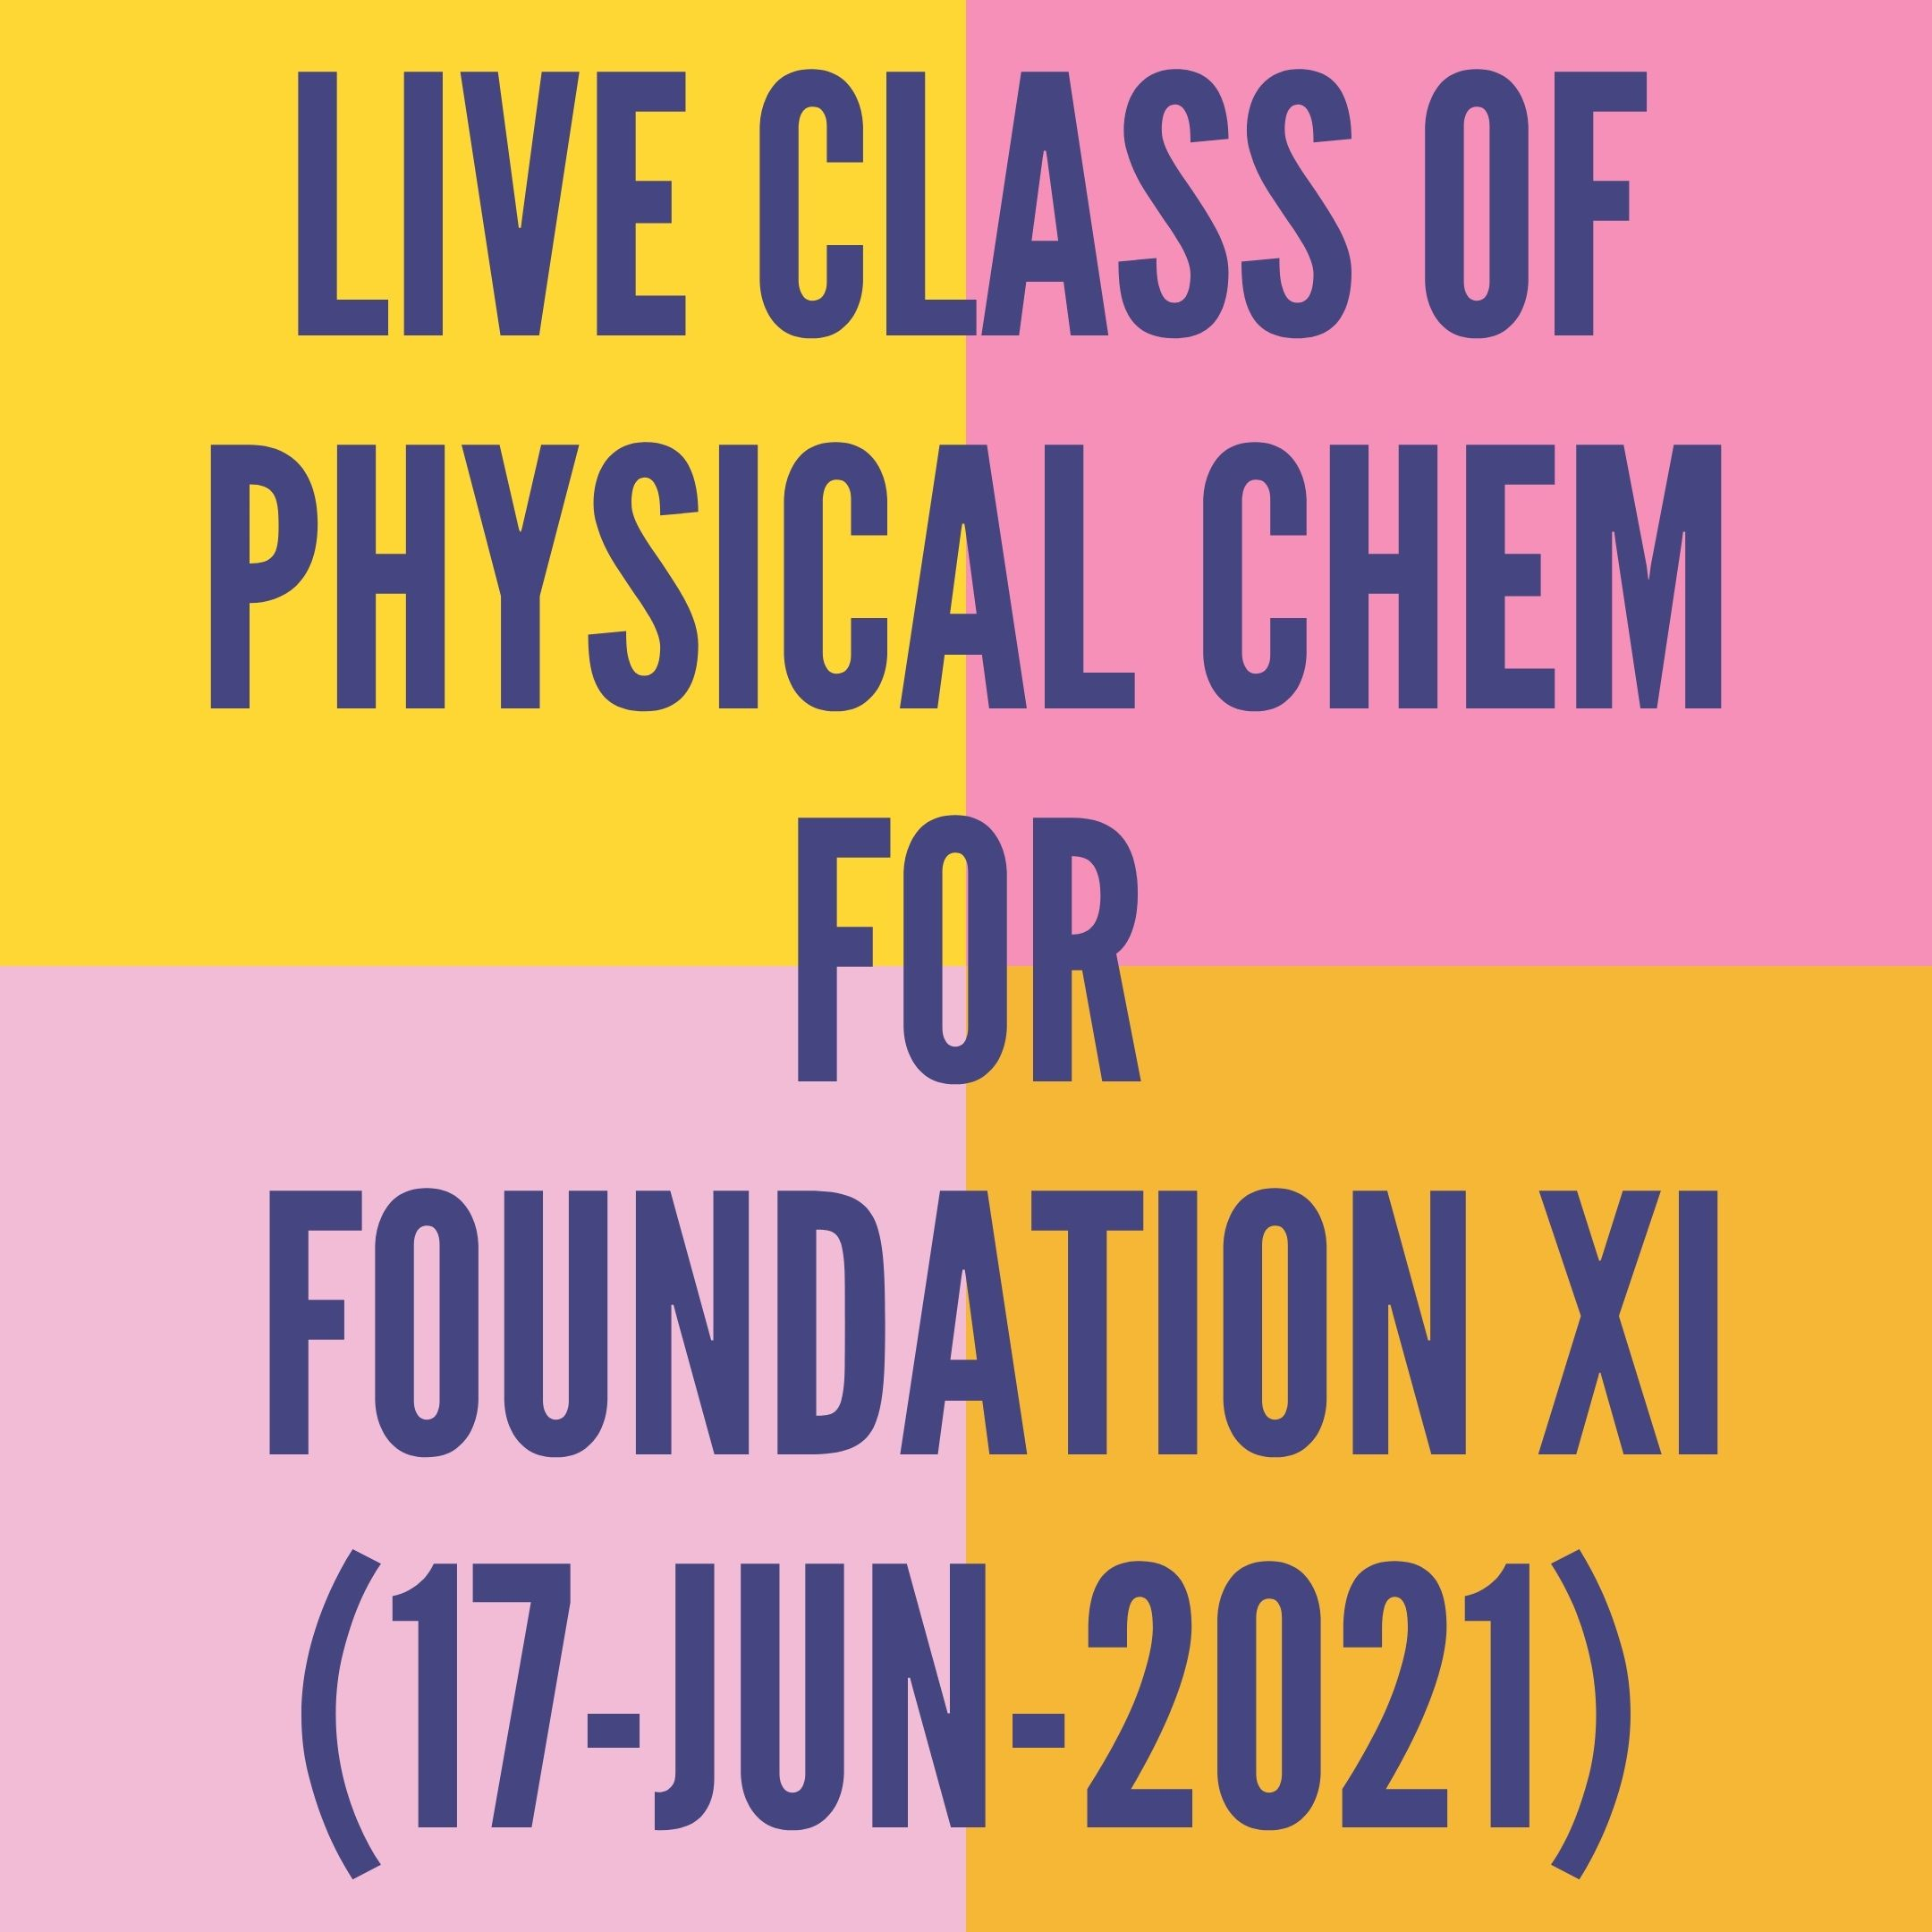 LIVE CLASS OF PHYSICAL CHEMISTRY FOR FOUNDATION XI (17-JUN-2021) SOME BASIC CONCEPT- MOLE